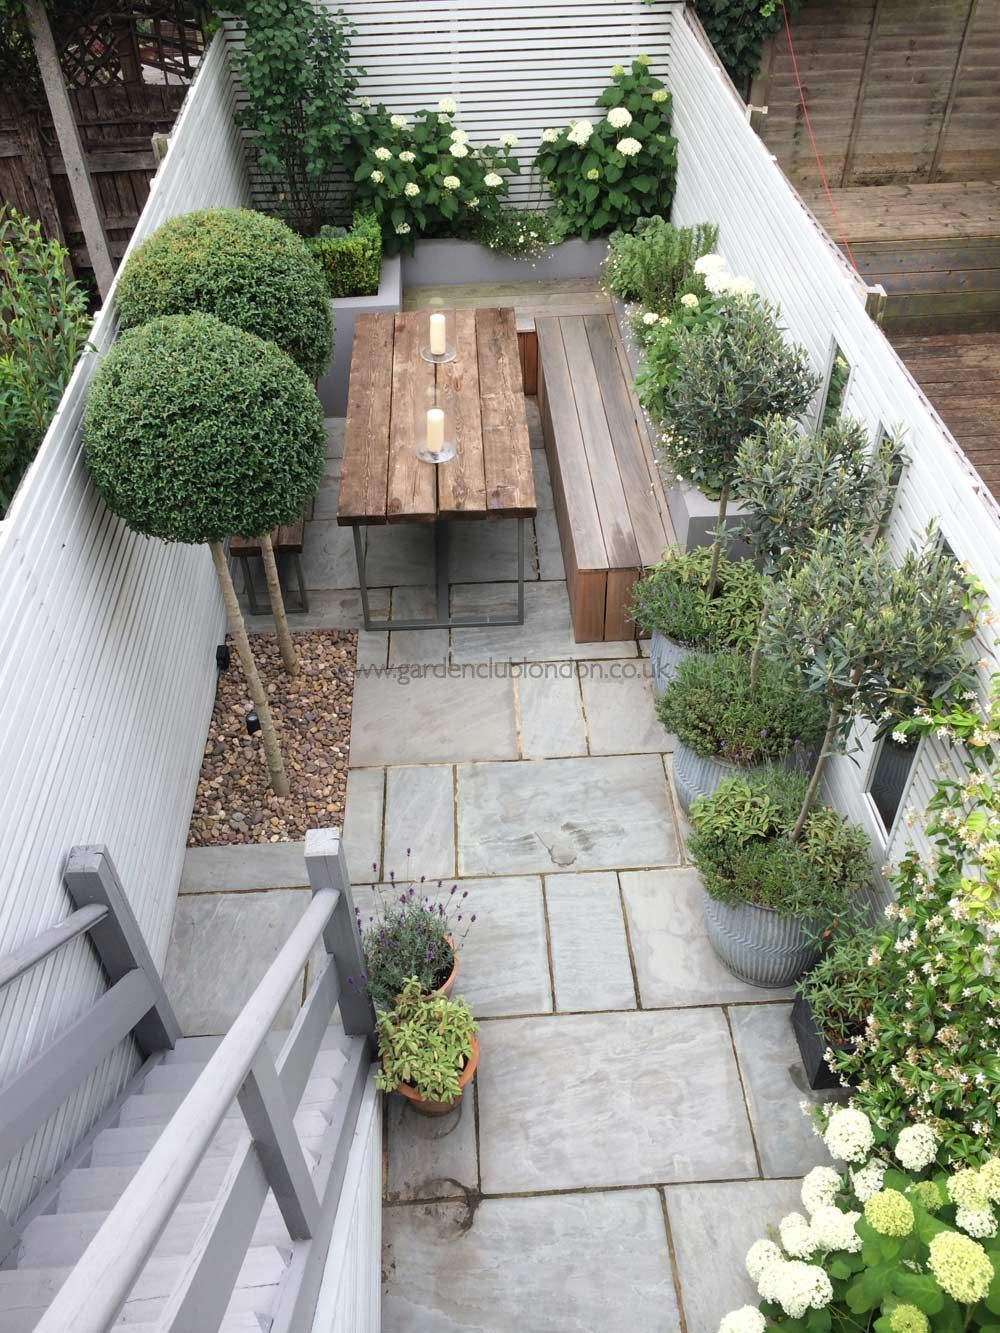 Photo of 40 Garden Ideas for a Small Backyard